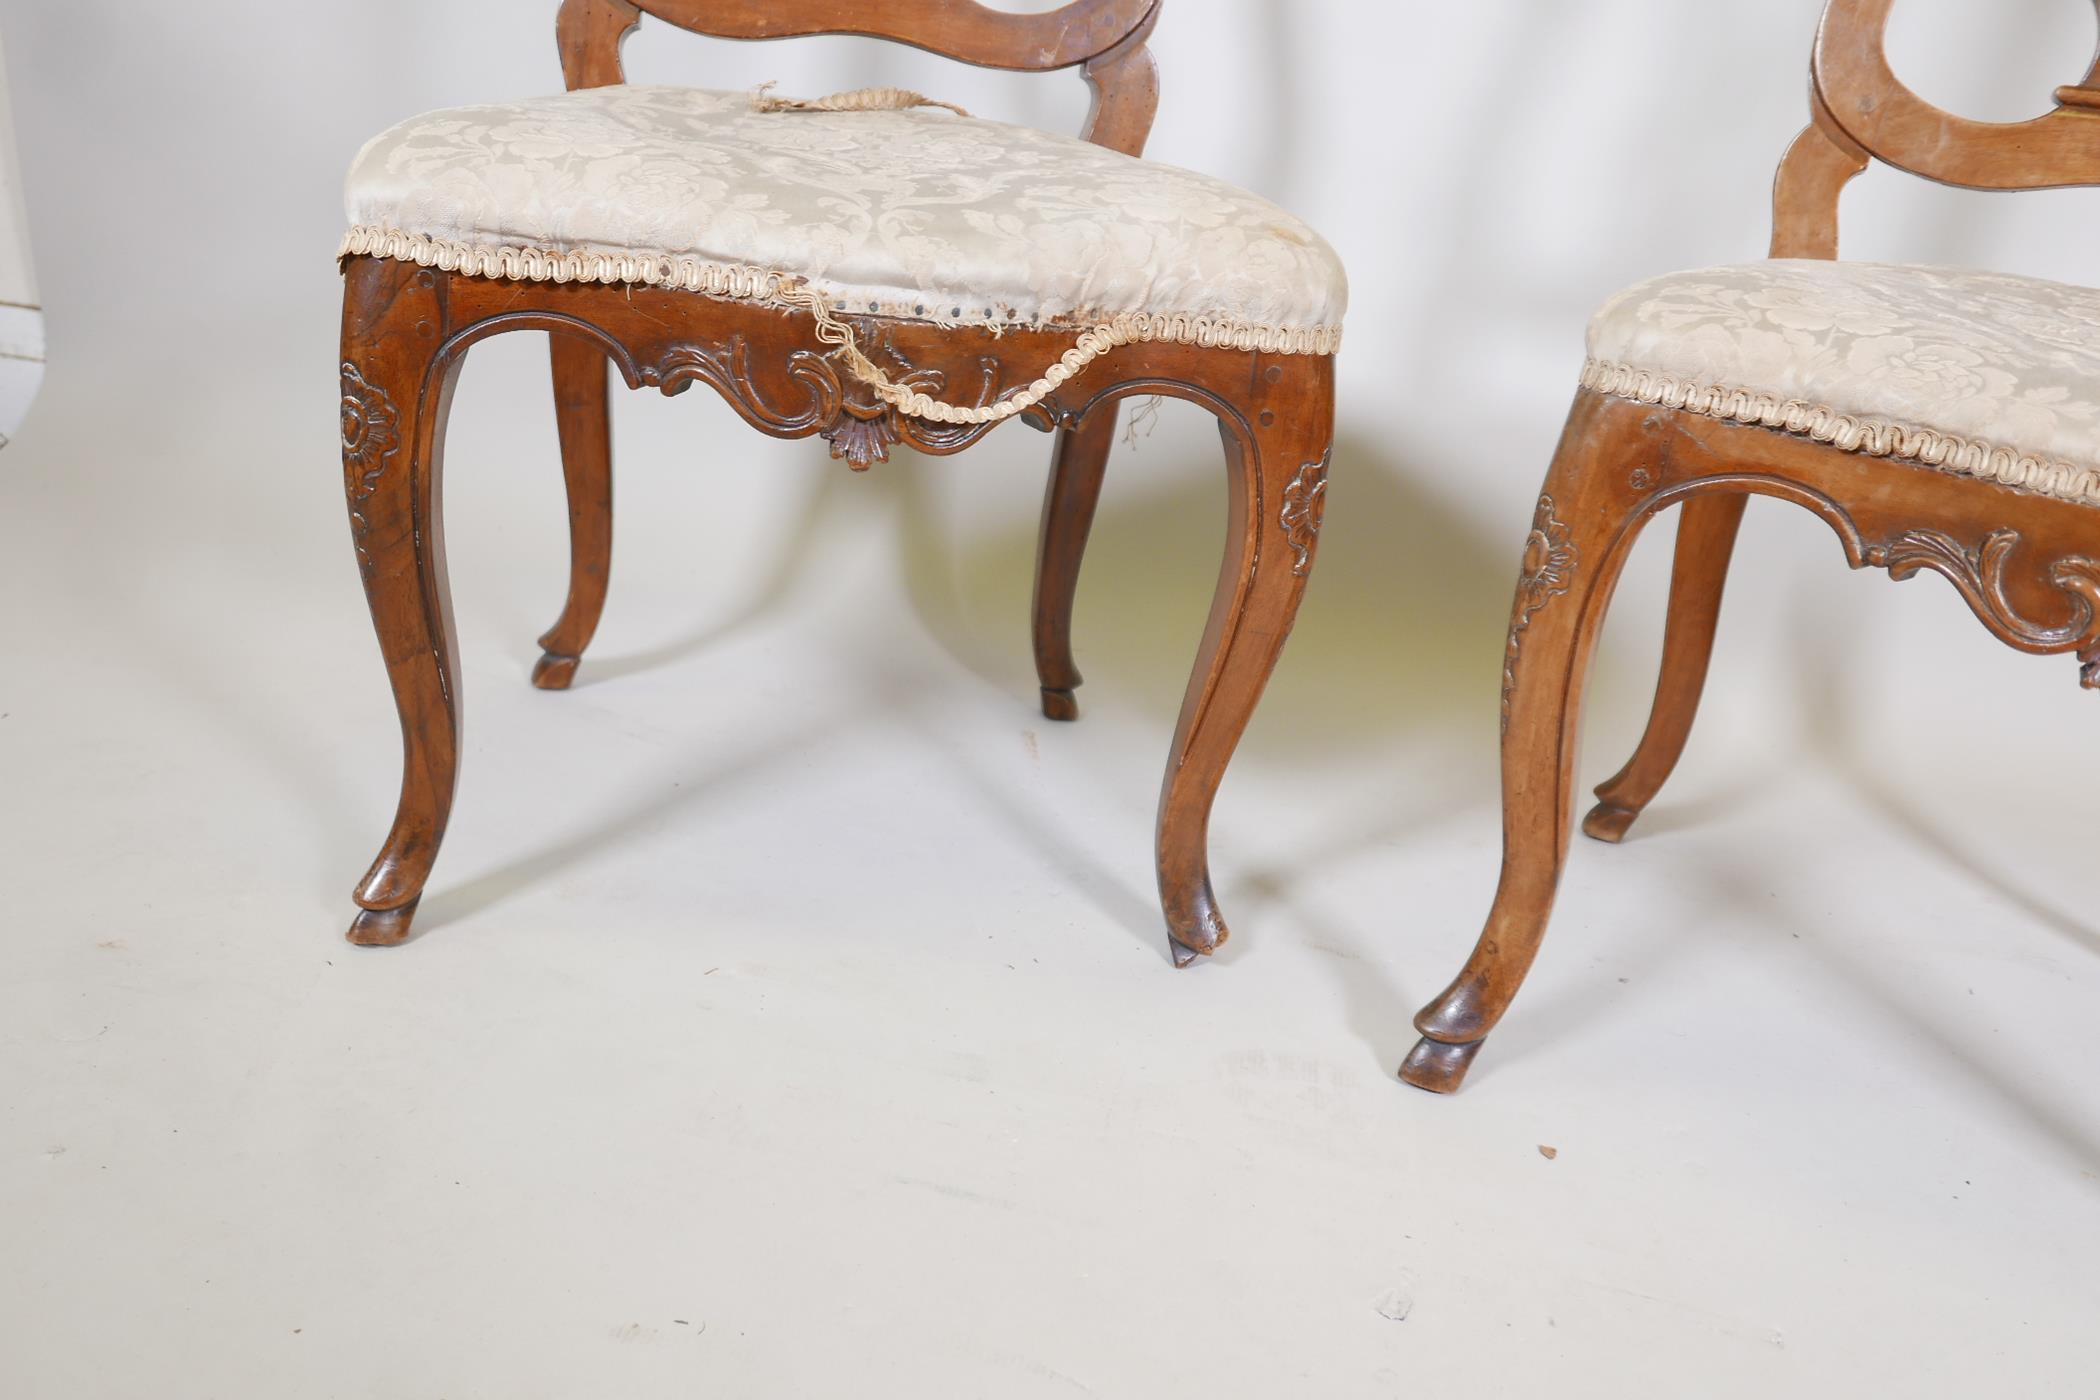 A pair of C18th French walnut pierced splat back side chairs with finely carved decoration, raised - Image 4 of 7